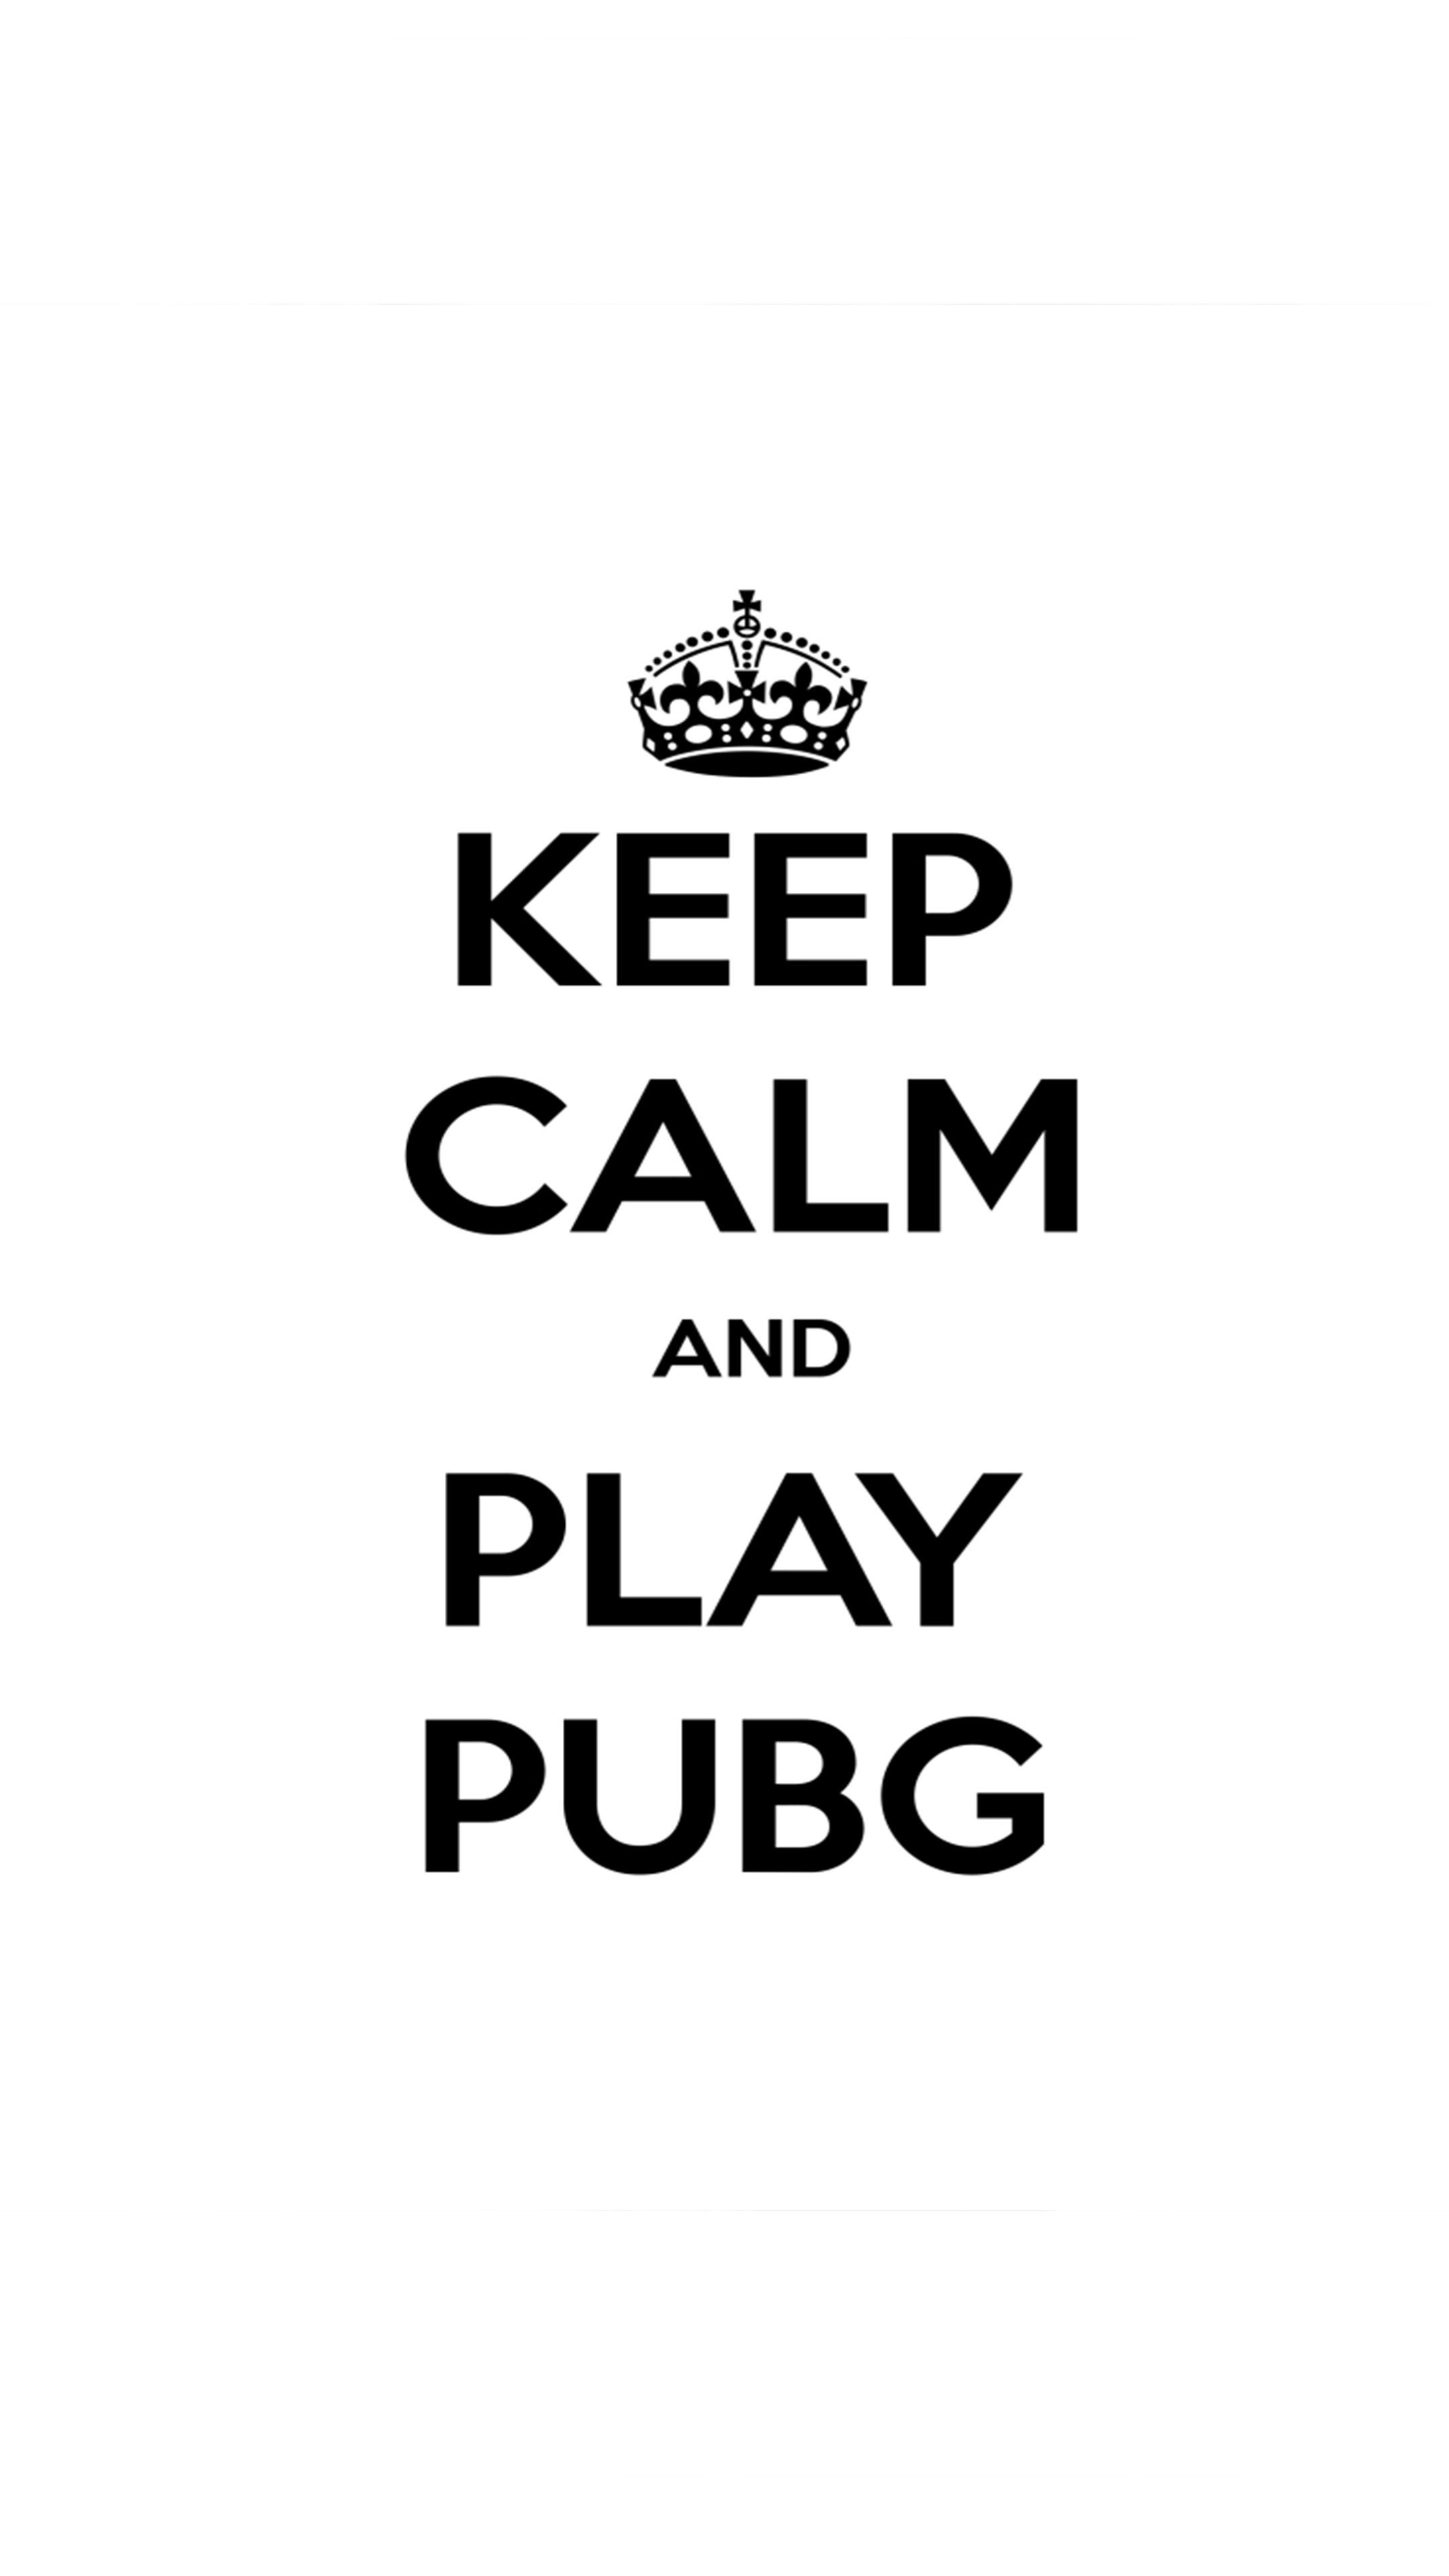 Download Pubg Wallpaper Dont Touch My Phone